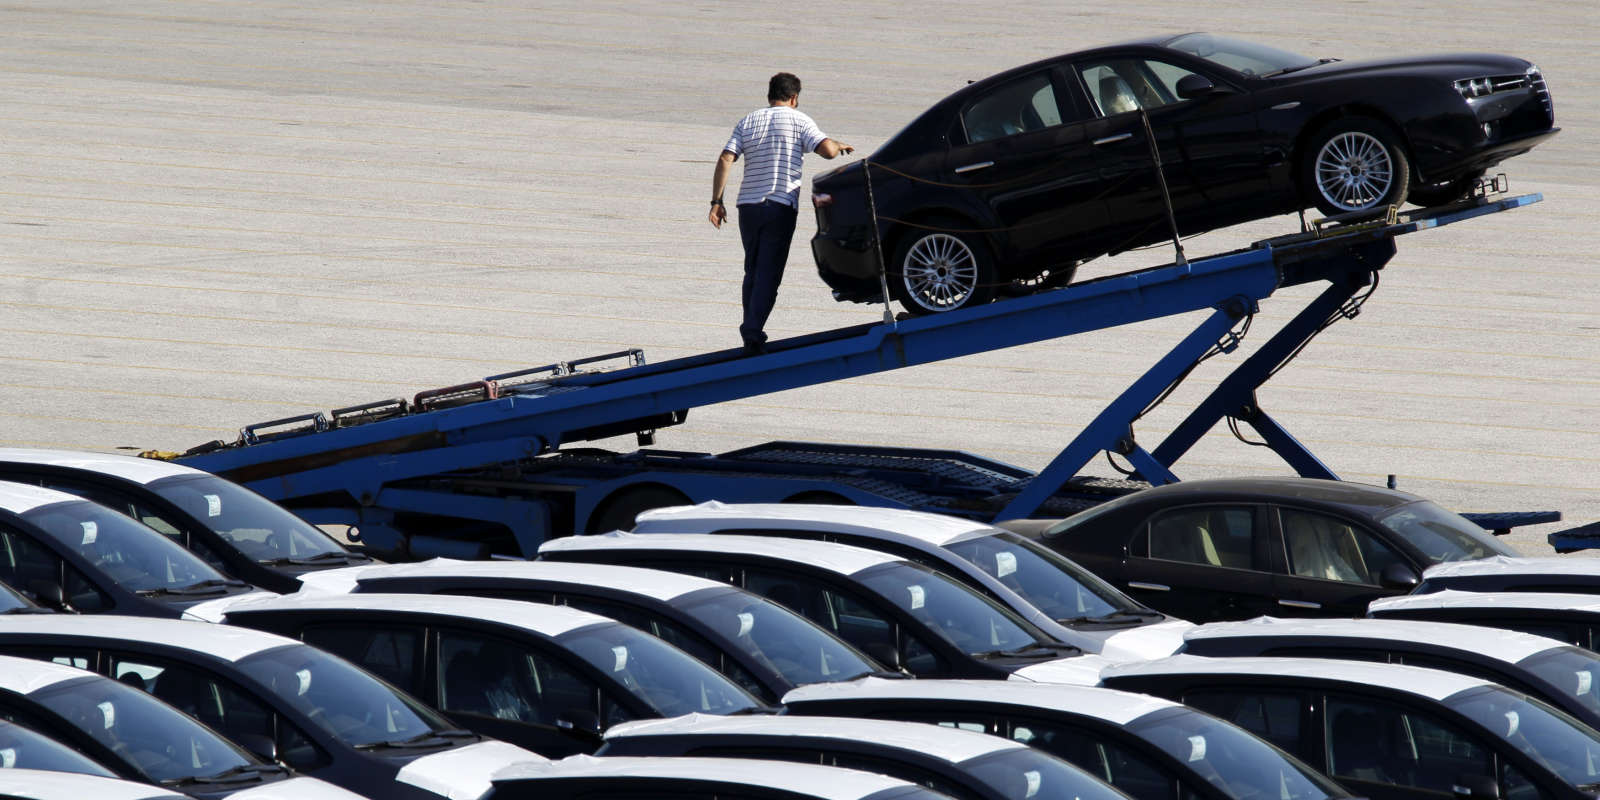 A man prepares to unload a car from a truck at a cargo terminal at Piraeus port near Athens July 8, 2011. Newly-issued car licenses in Greece dropped 42 percent during the first half of 2011 compared to the same period in 2010, according to the Greek Statistics Authority. REUTERS/Yiorgos Karahalis (GREECE - Tags: TRANSPORT POLITICS BUSINESS) - GM1E7781FQ001